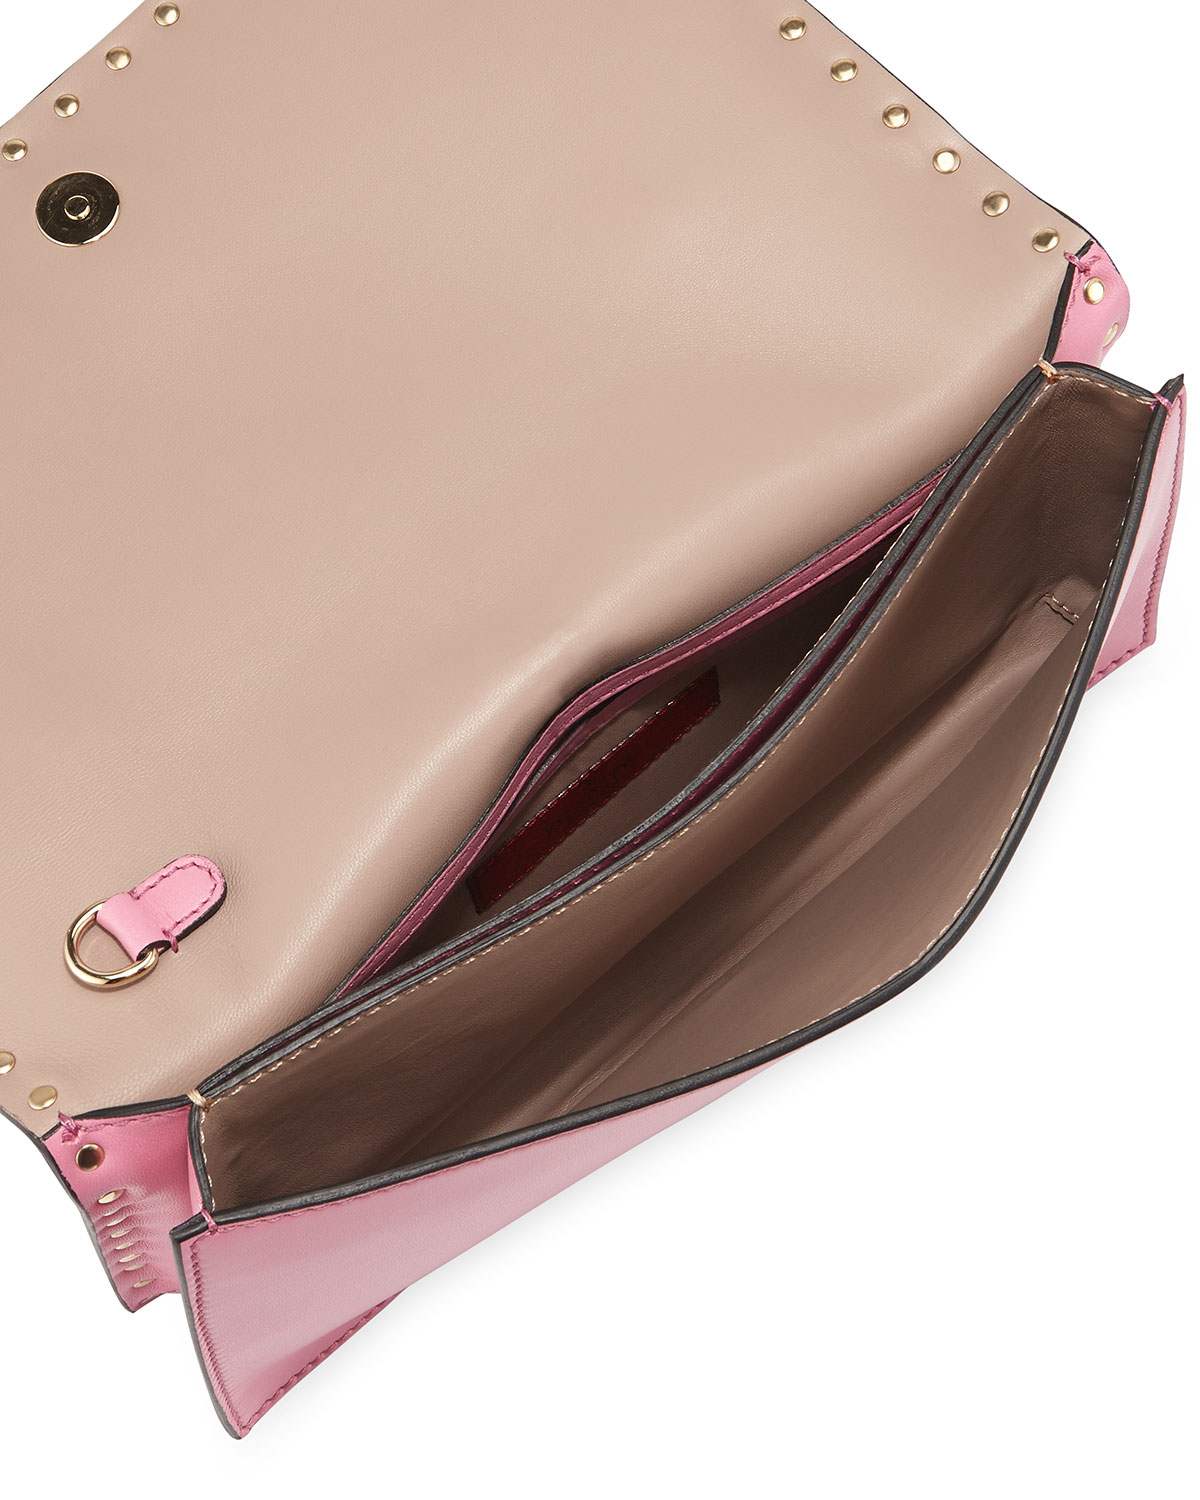 valentino rockstud flap wristlet clutch bag in pink